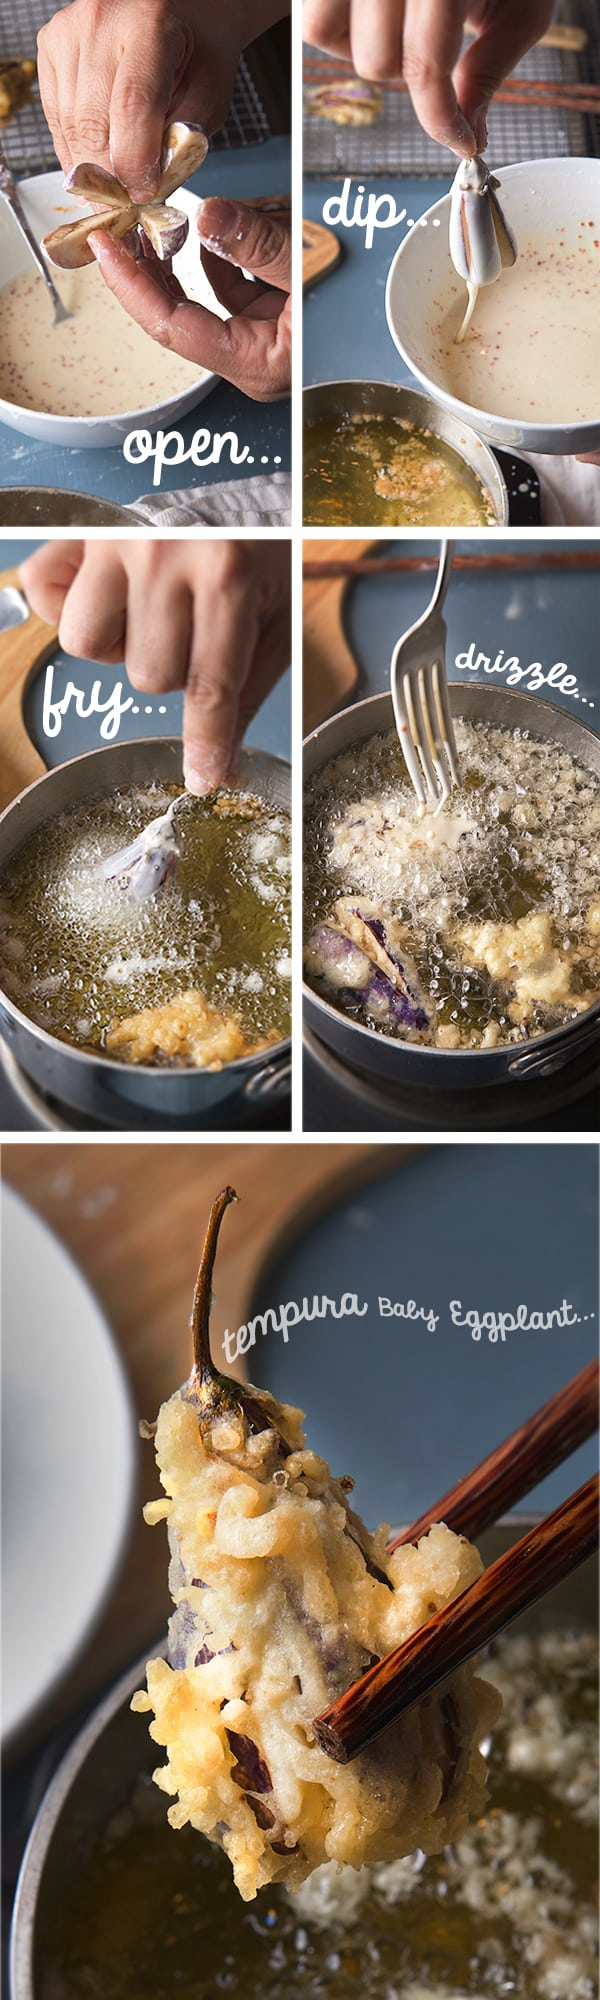 how-to-fry-tempura_yes-more-please